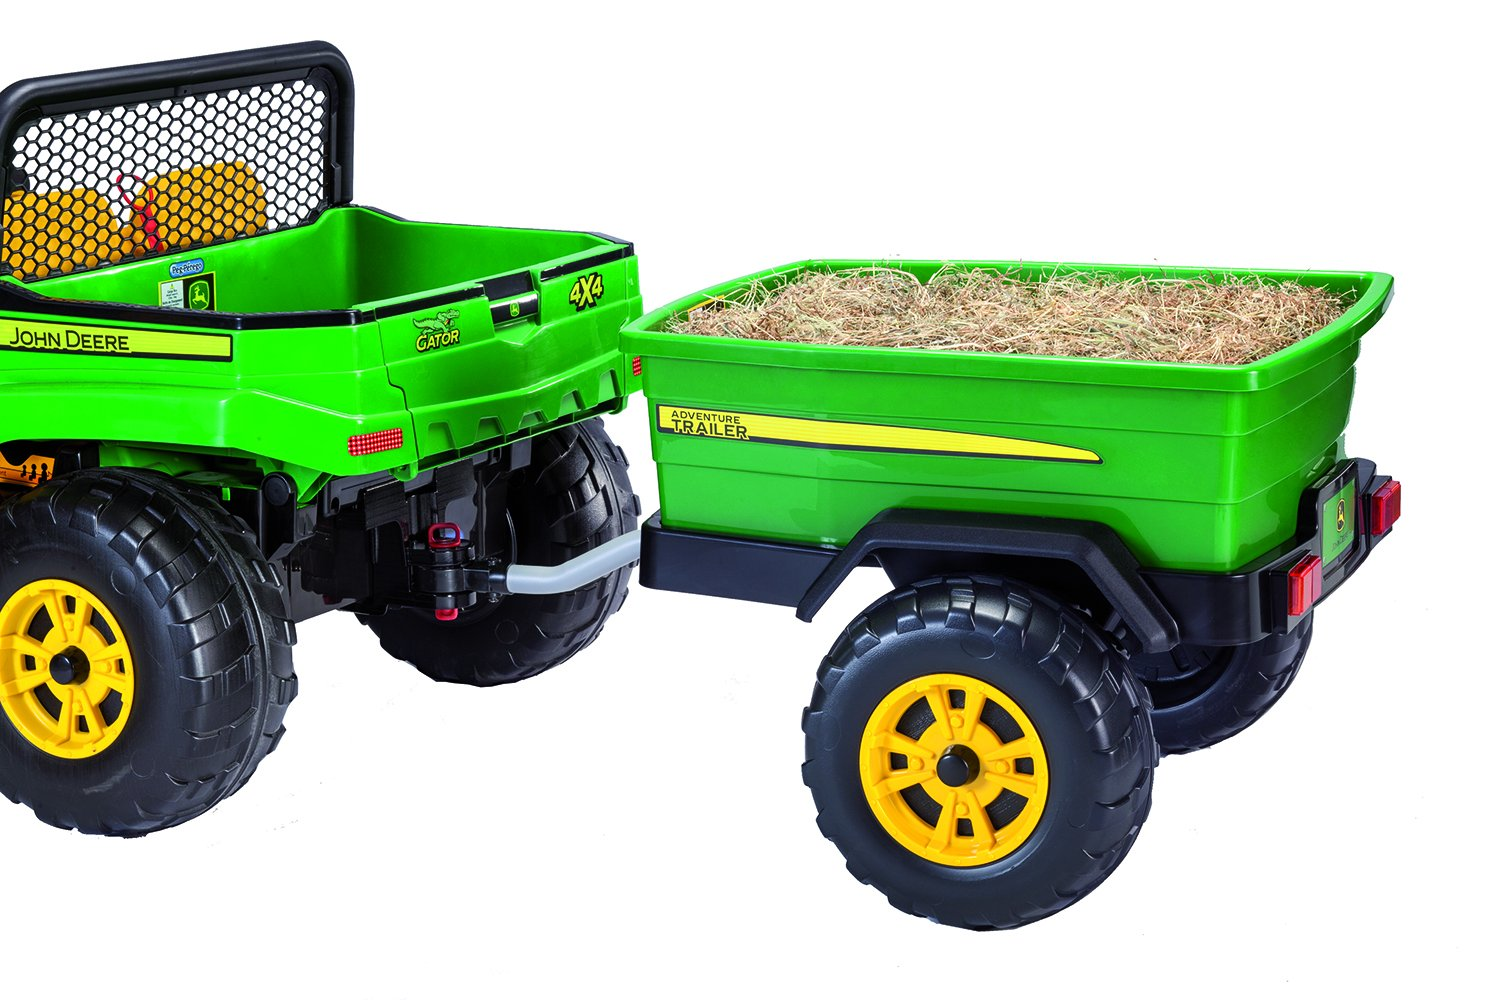 John Deere Adventure Trailer for Gator by Peg Perego (Image #2)